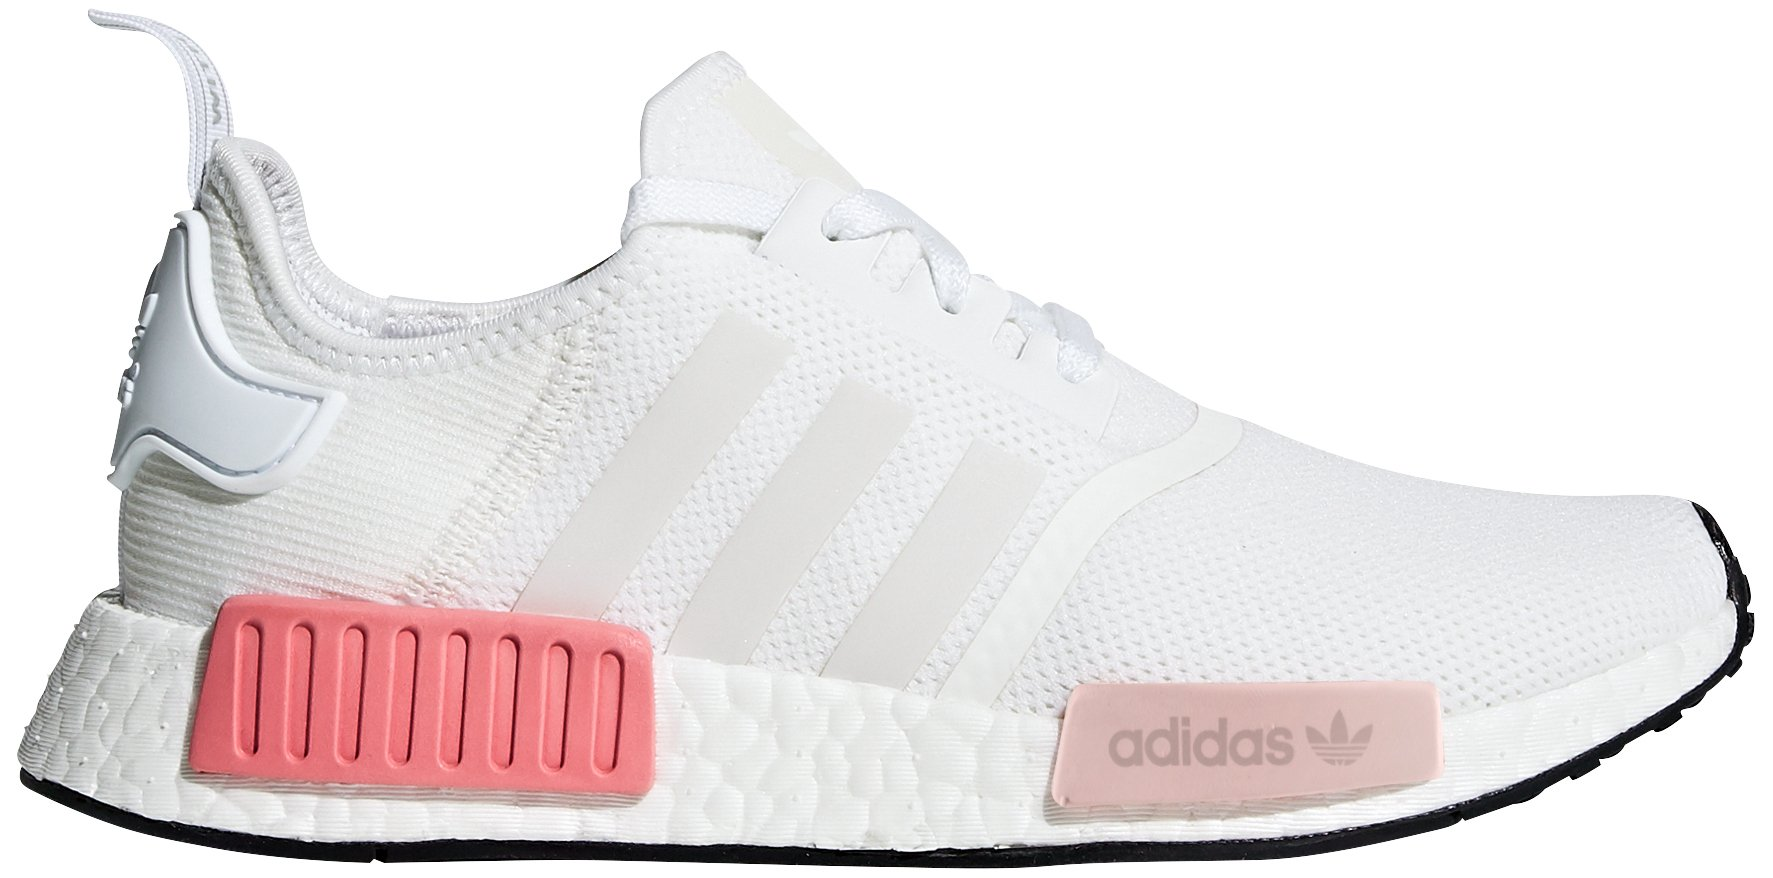 quality design acaa2 2a215 Galleon - Adidas Originals Women s NMD R1 W Running Shoe, White Icey Pink, 9.5  M US